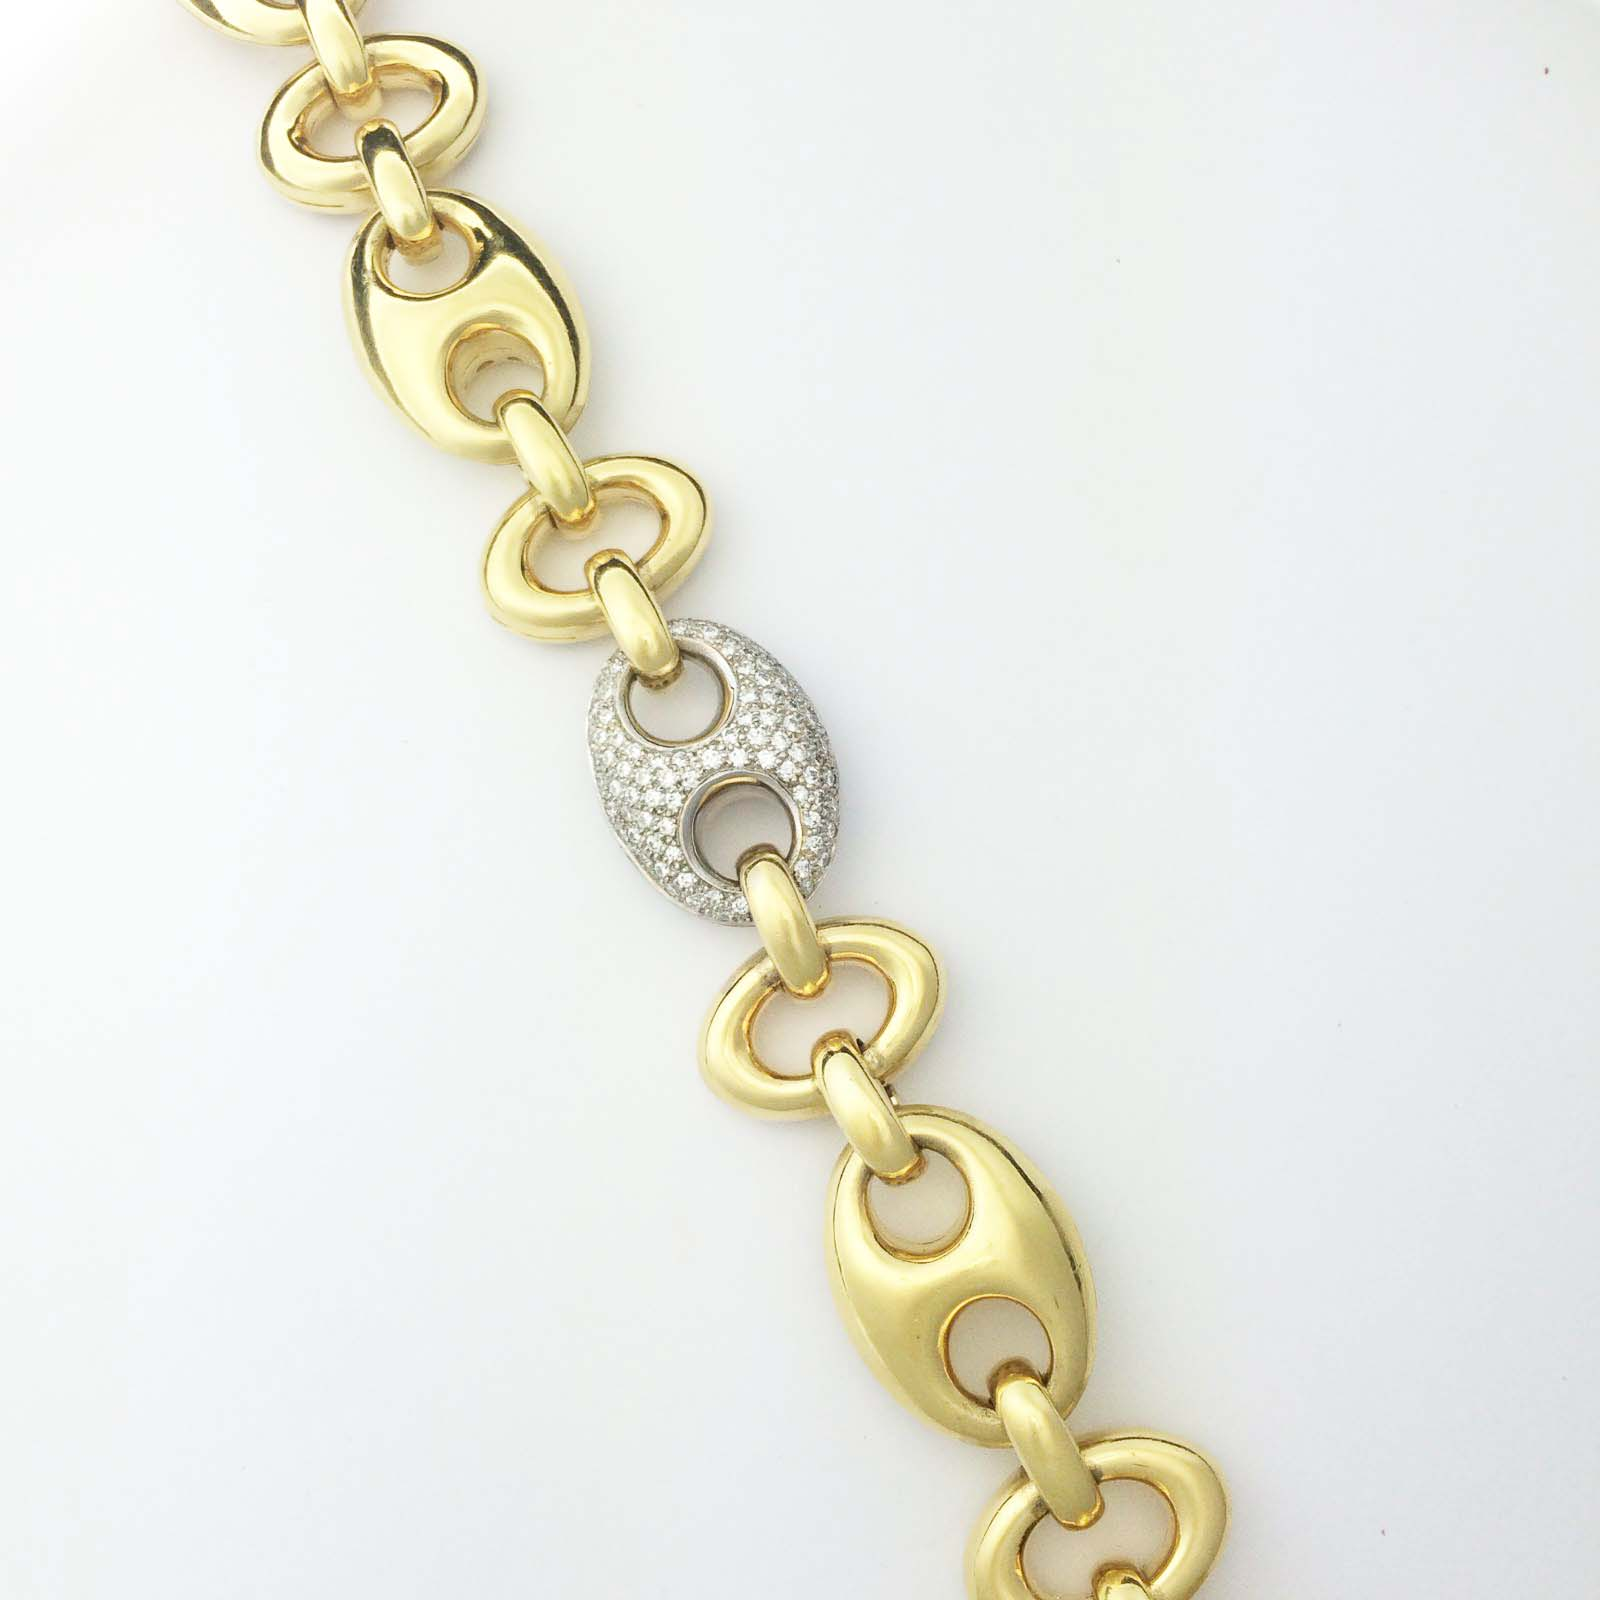 Heavy Italian bracelet with diamond link